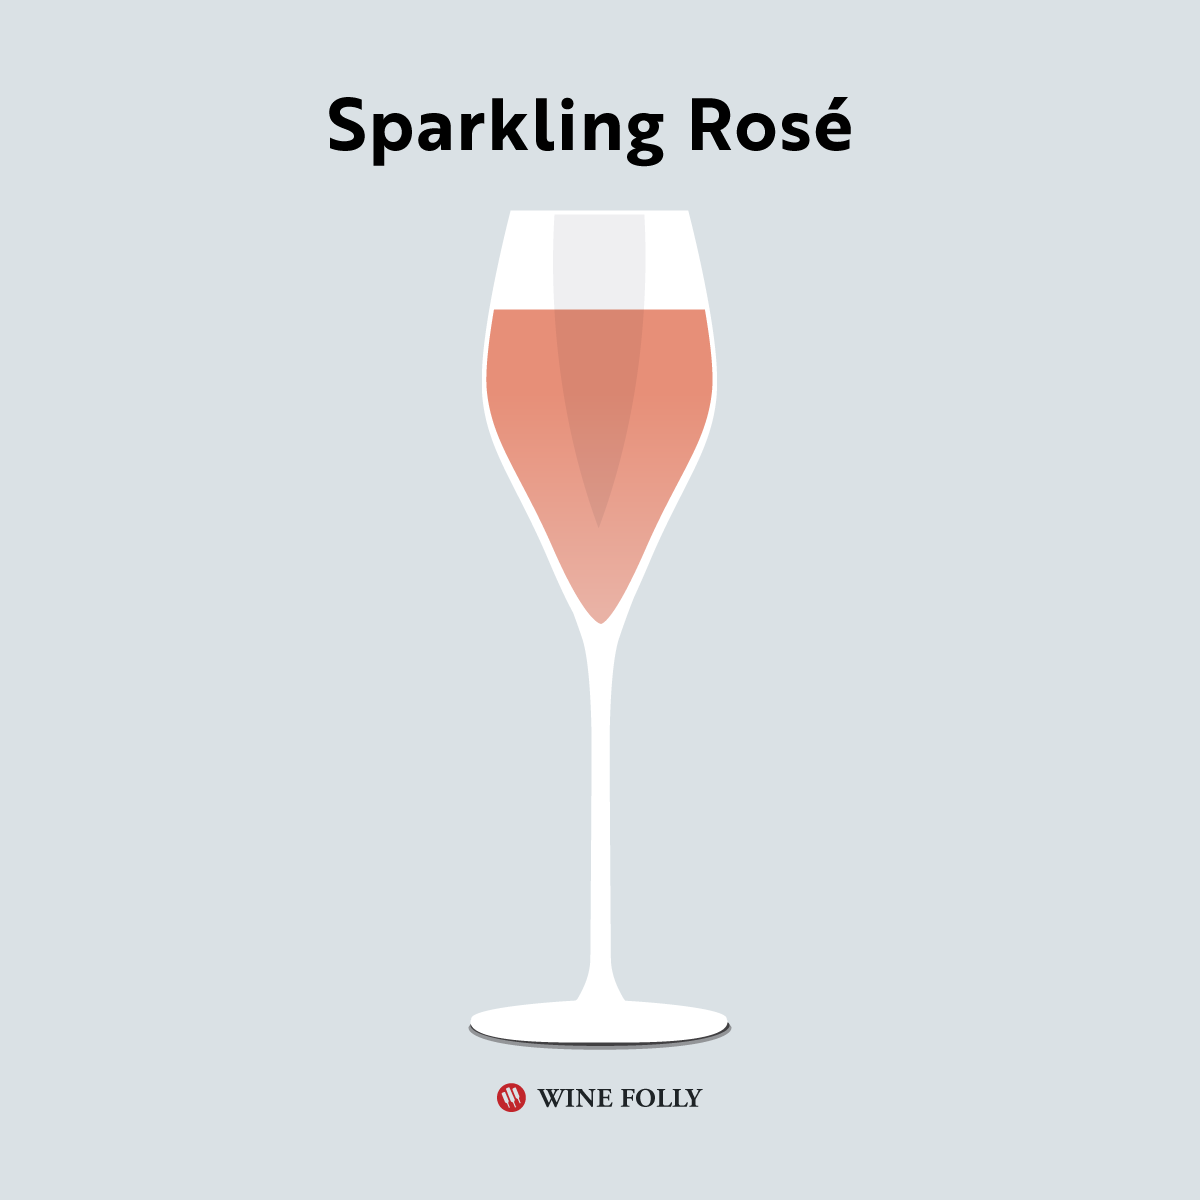 Illustration of sparkling rosé wine in a glass by Wine Folly